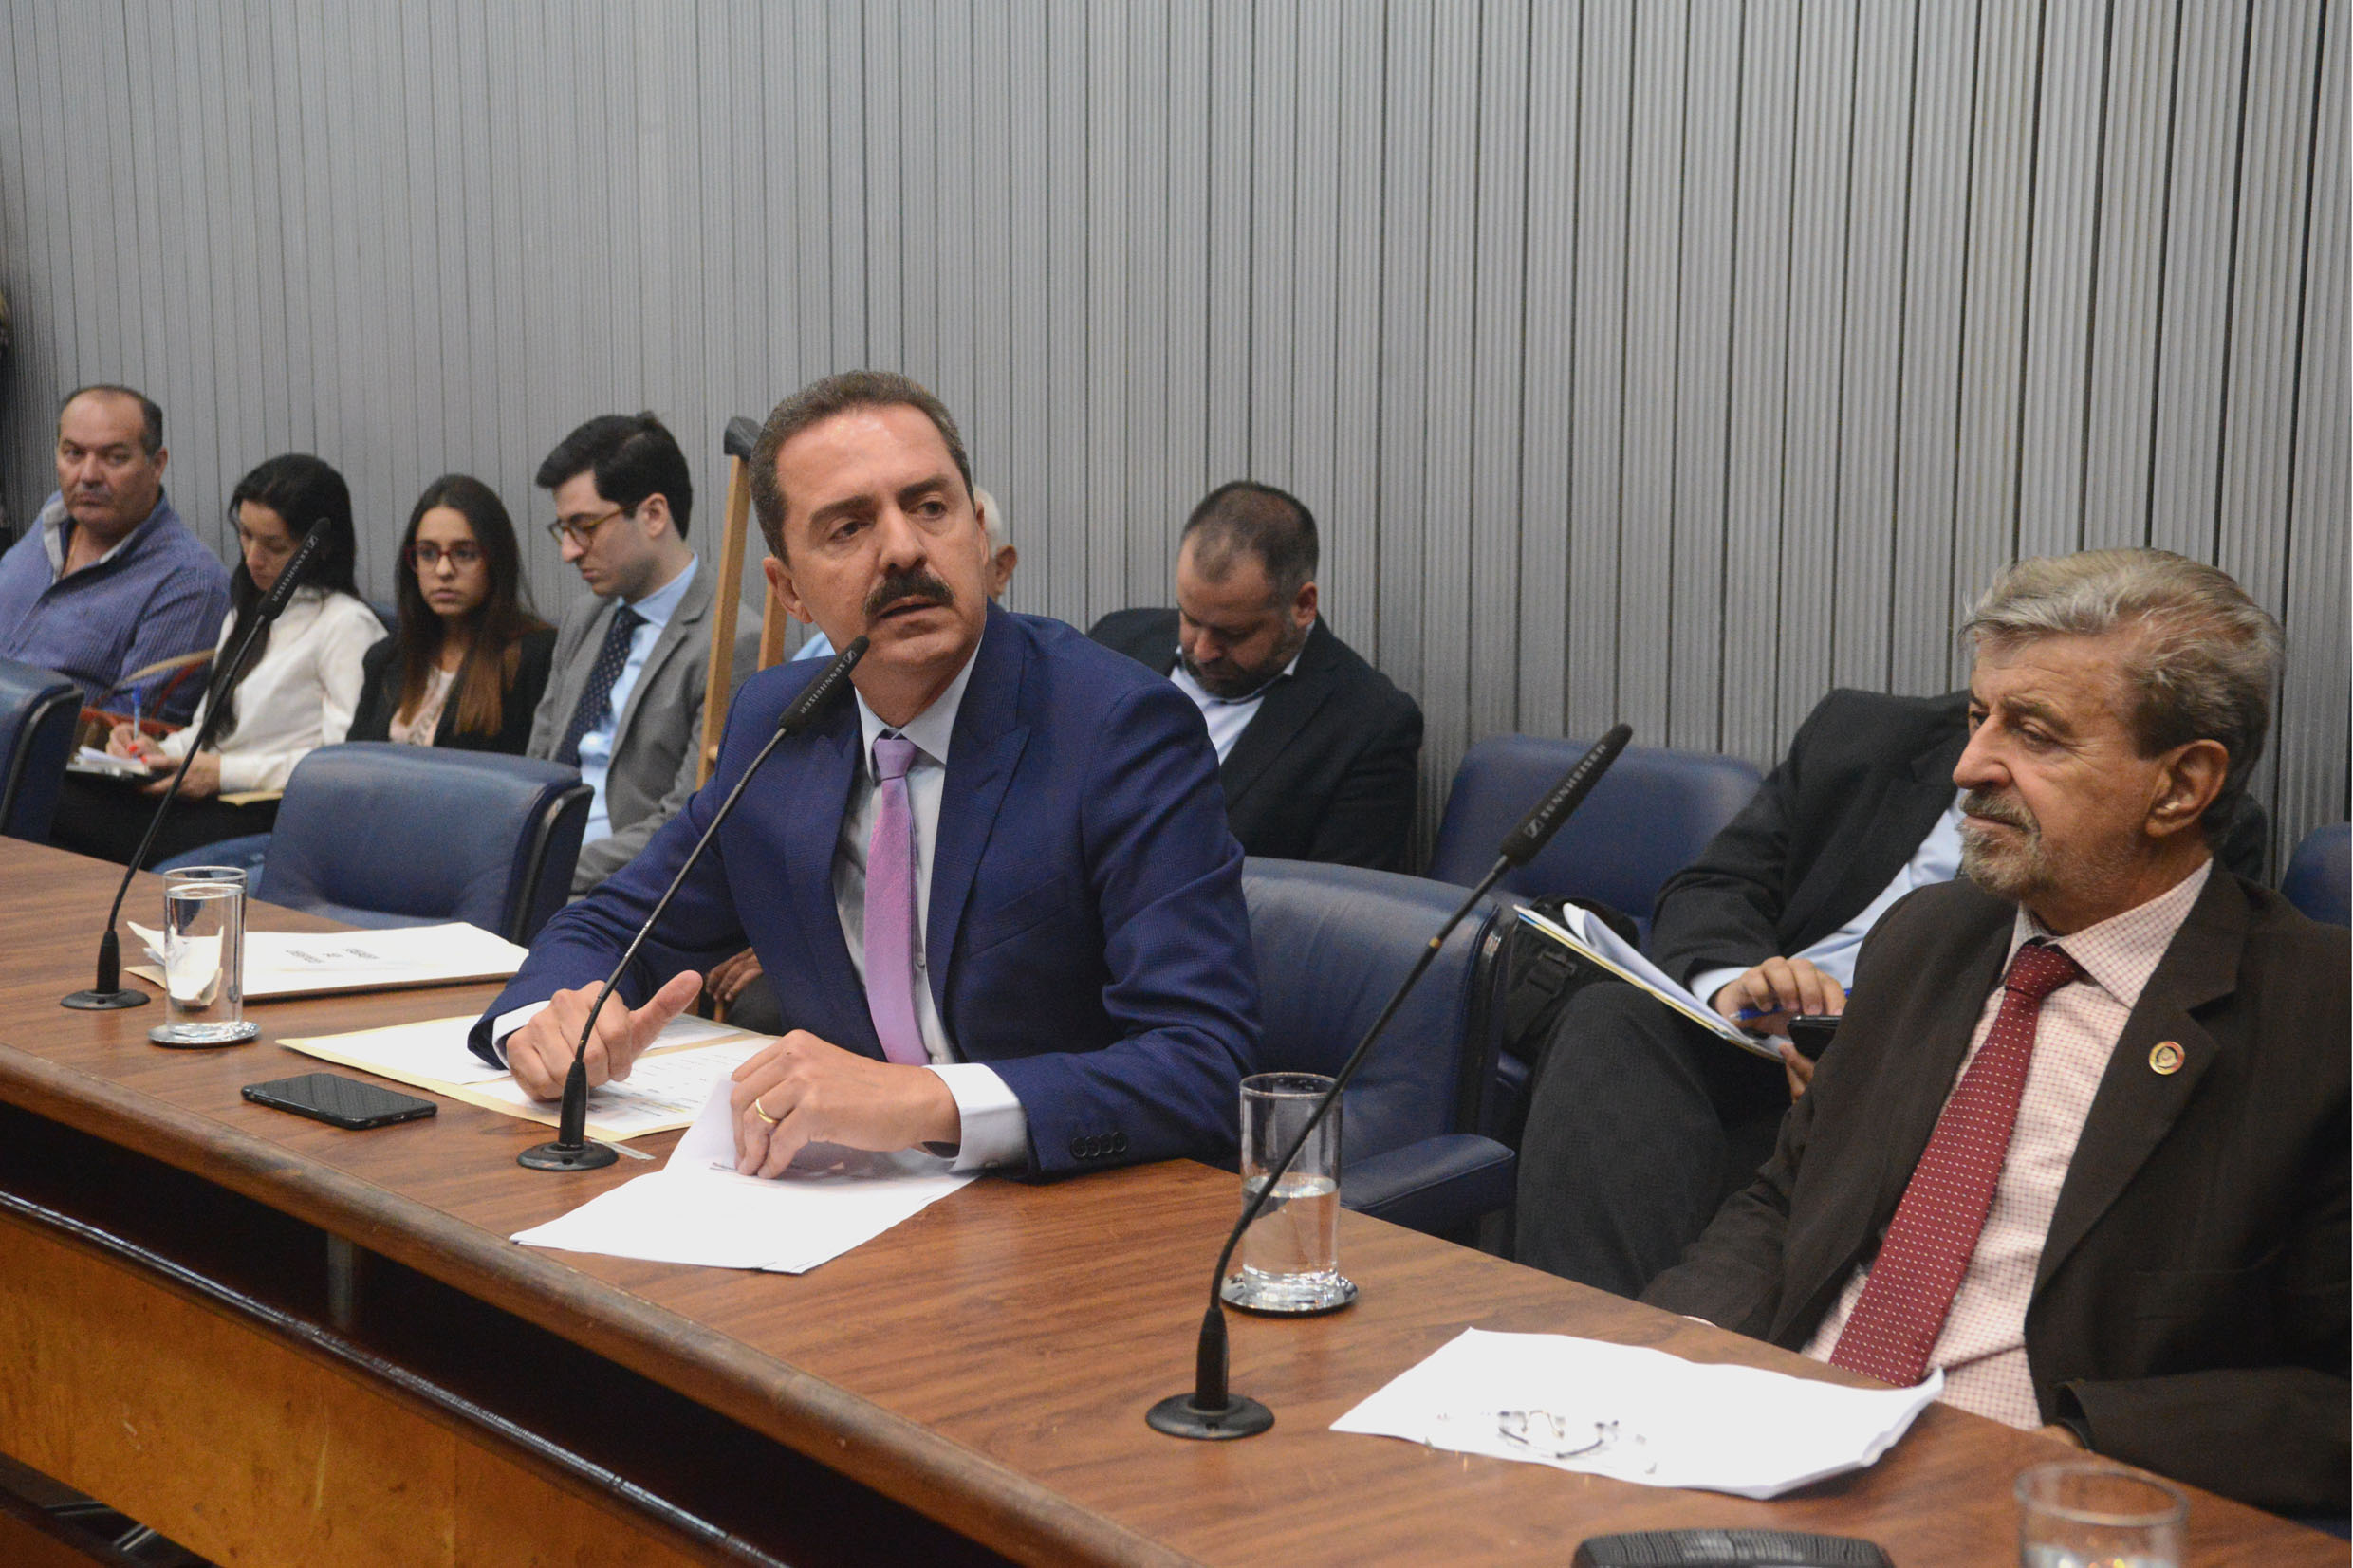 Parlamentares na comissão <a style='float:right' href='https://www3.al.sp.gov.br/repositorio/noticia/N-02-2019/fg229845.jpg' target=_blank><img src='/_img/material-file-download-white.png' width='14px' alt='Clique para baixar a imagem'></a>